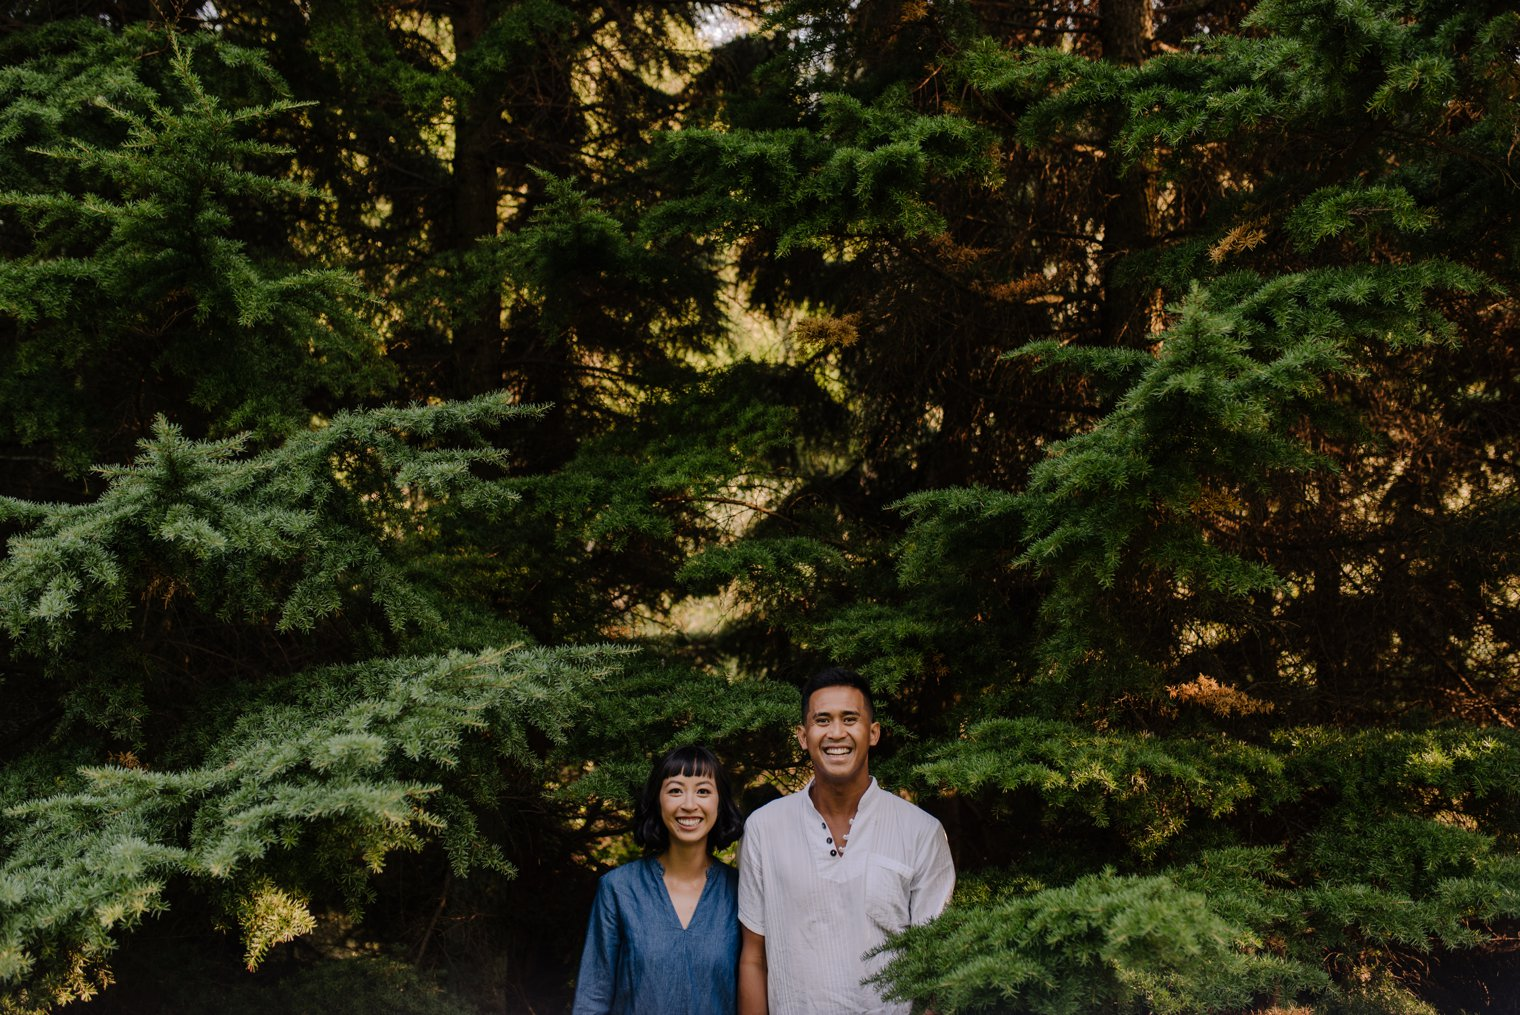 charleson park engagement photos in vancouver